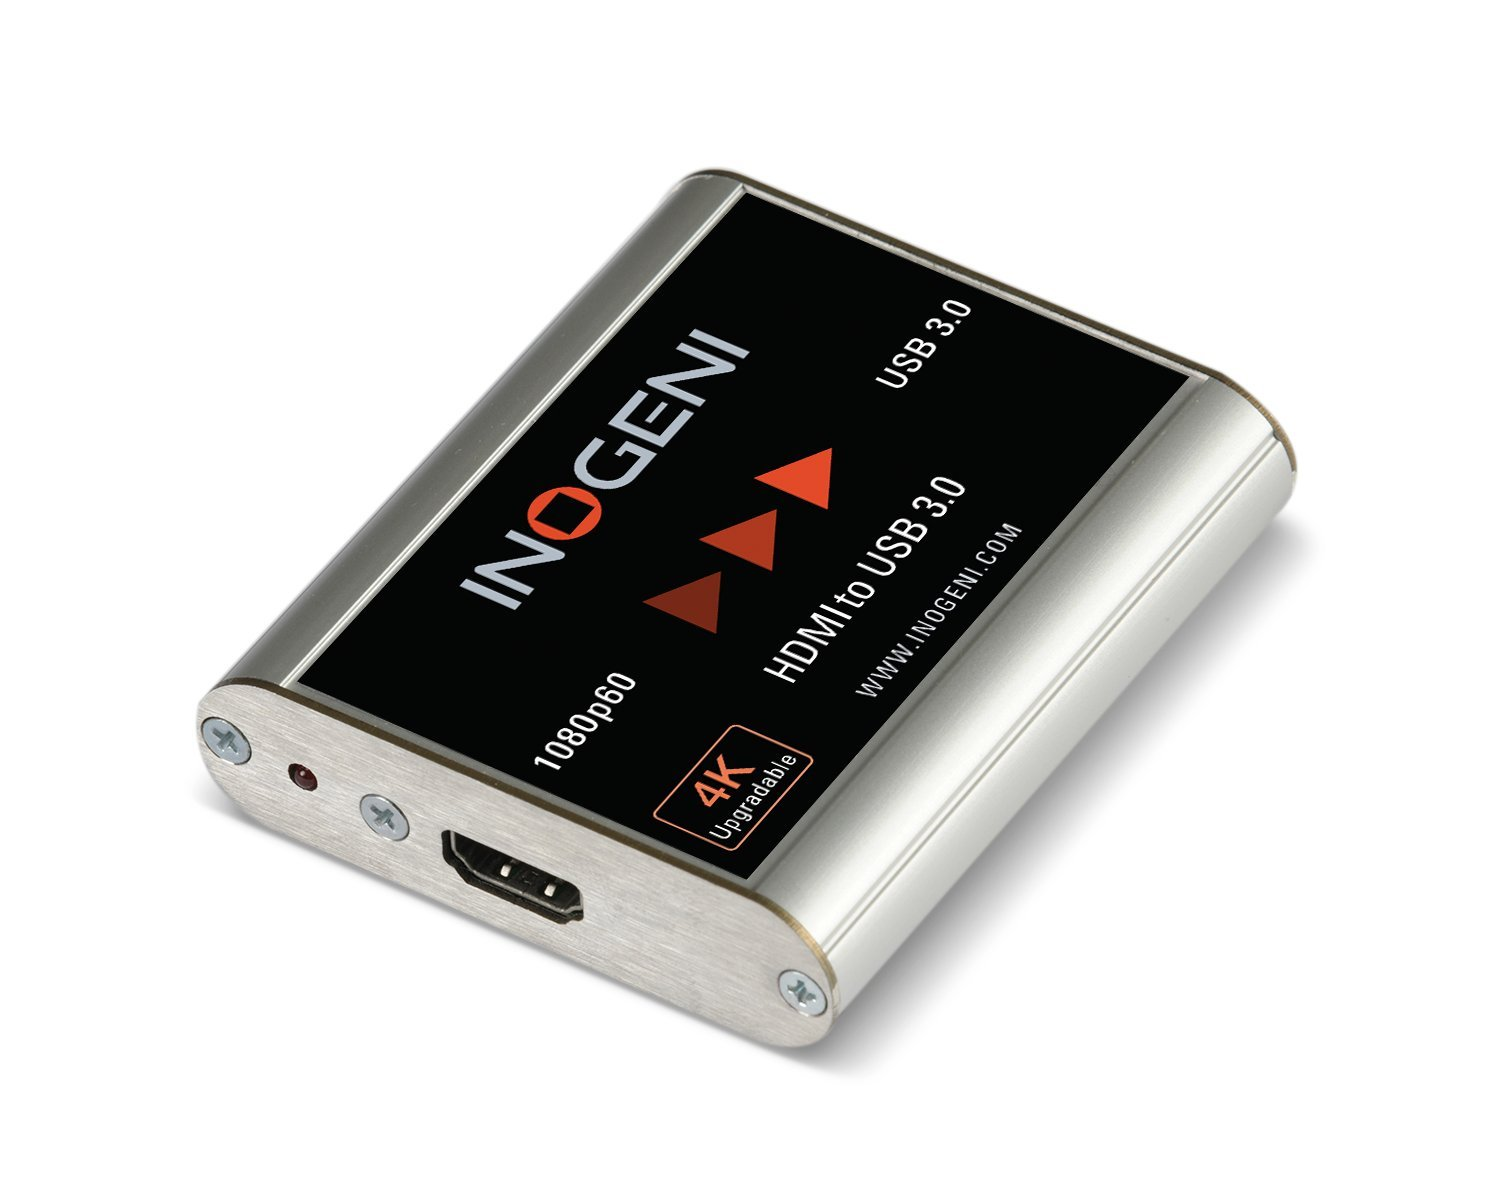 INOGENI HD2USB3 4K Upgradable 1080p/60 HDMI to USB 3.0 converter